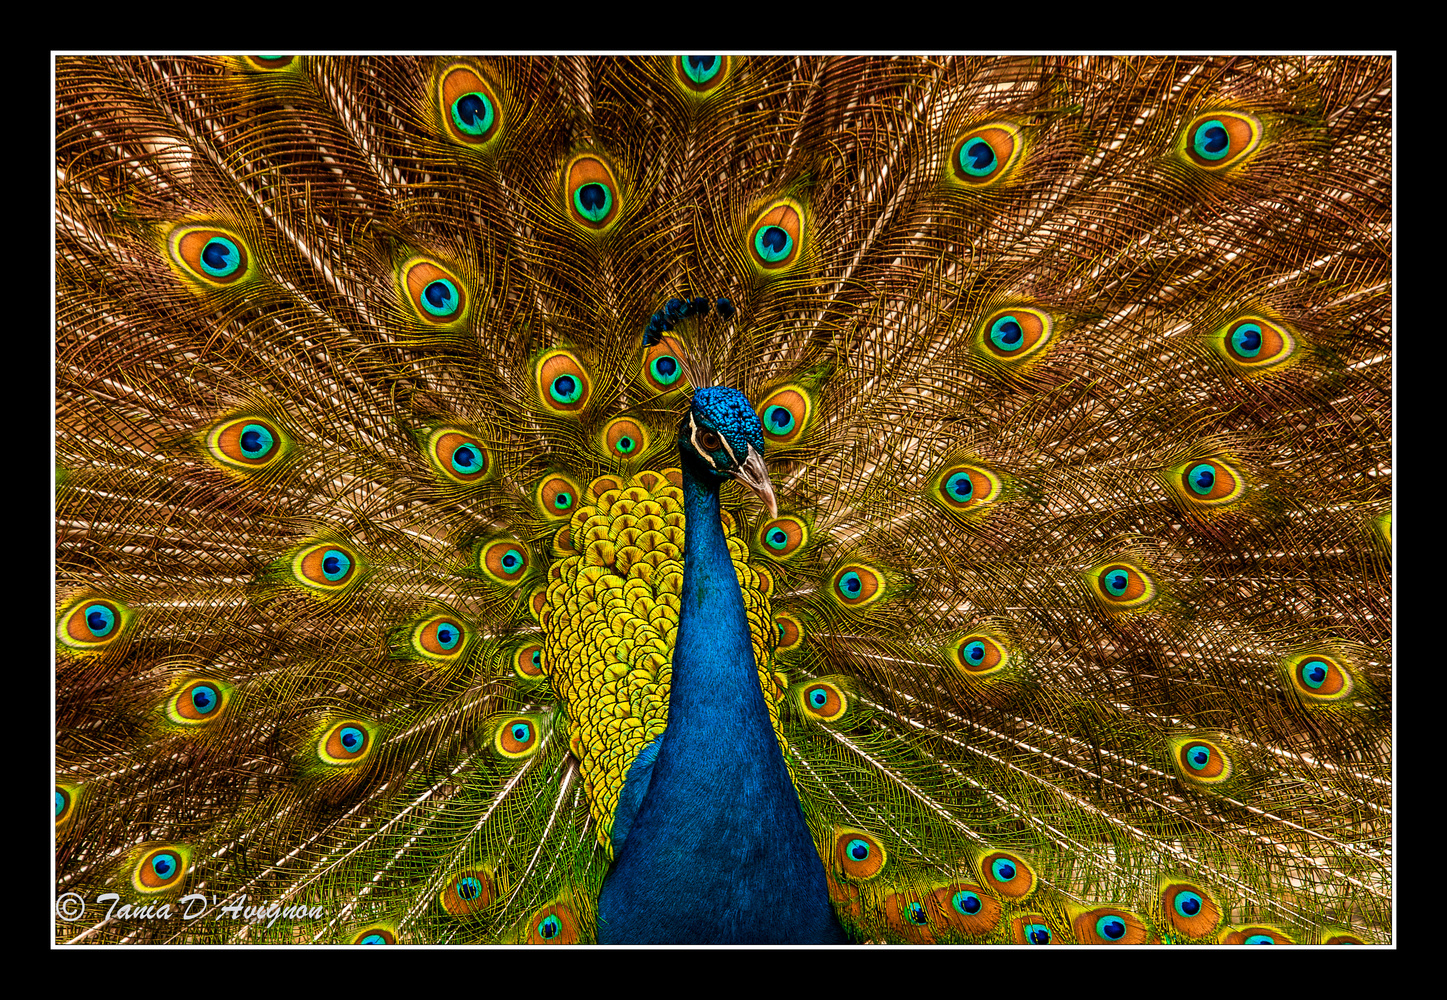 Portrait of a Peacock by Tania D'Avignon